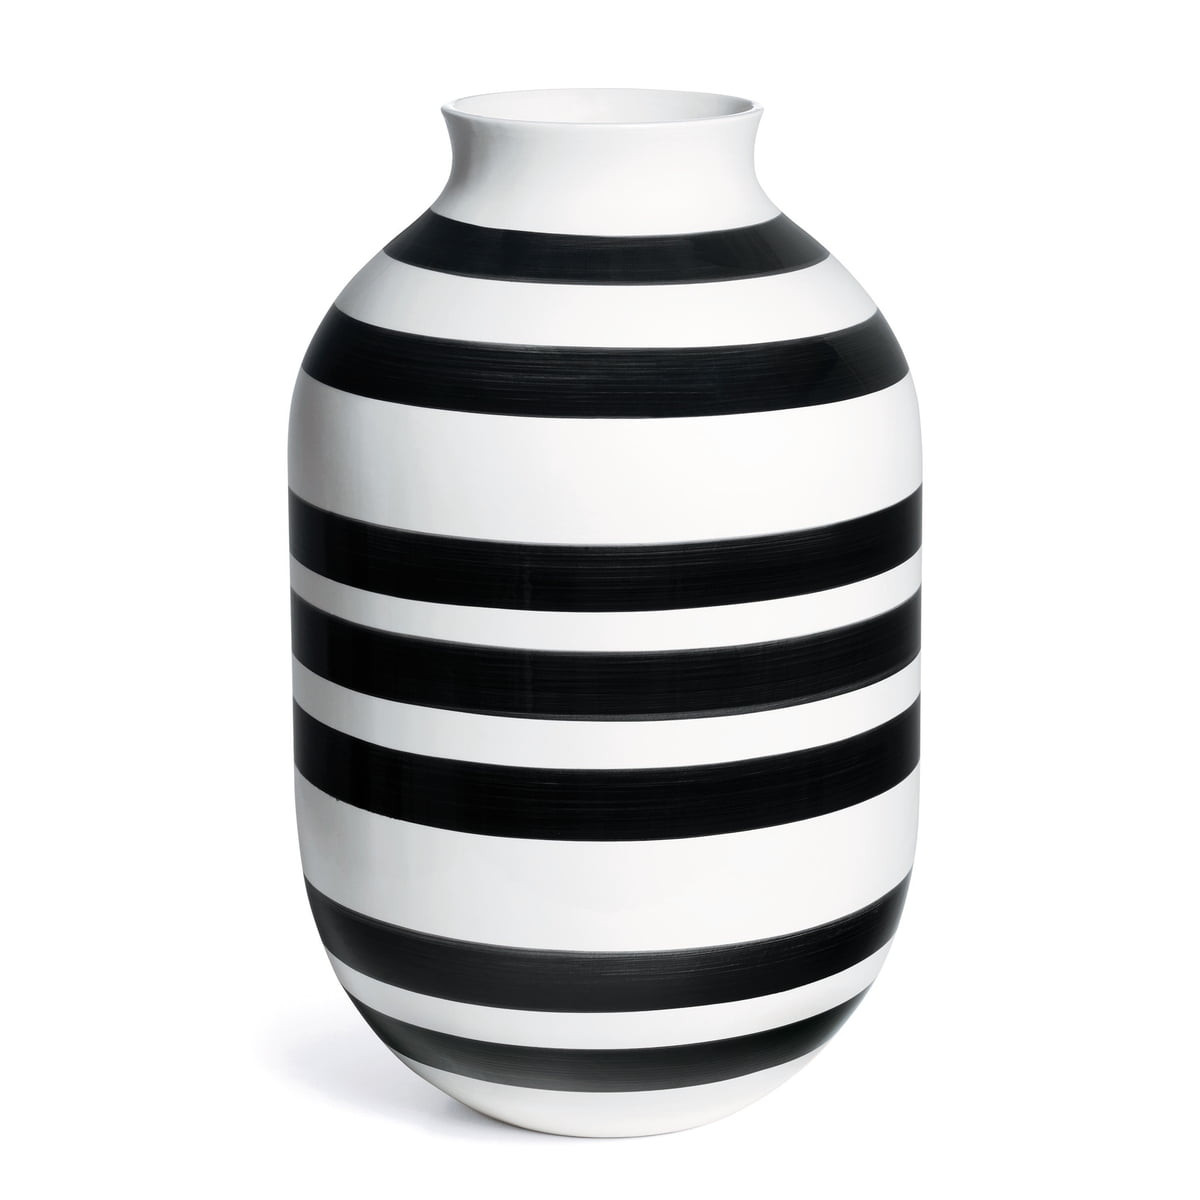 the omaggio vase h 50 cm by k hler design. Black Bedroom Furniture Sets. Home Design Ideas